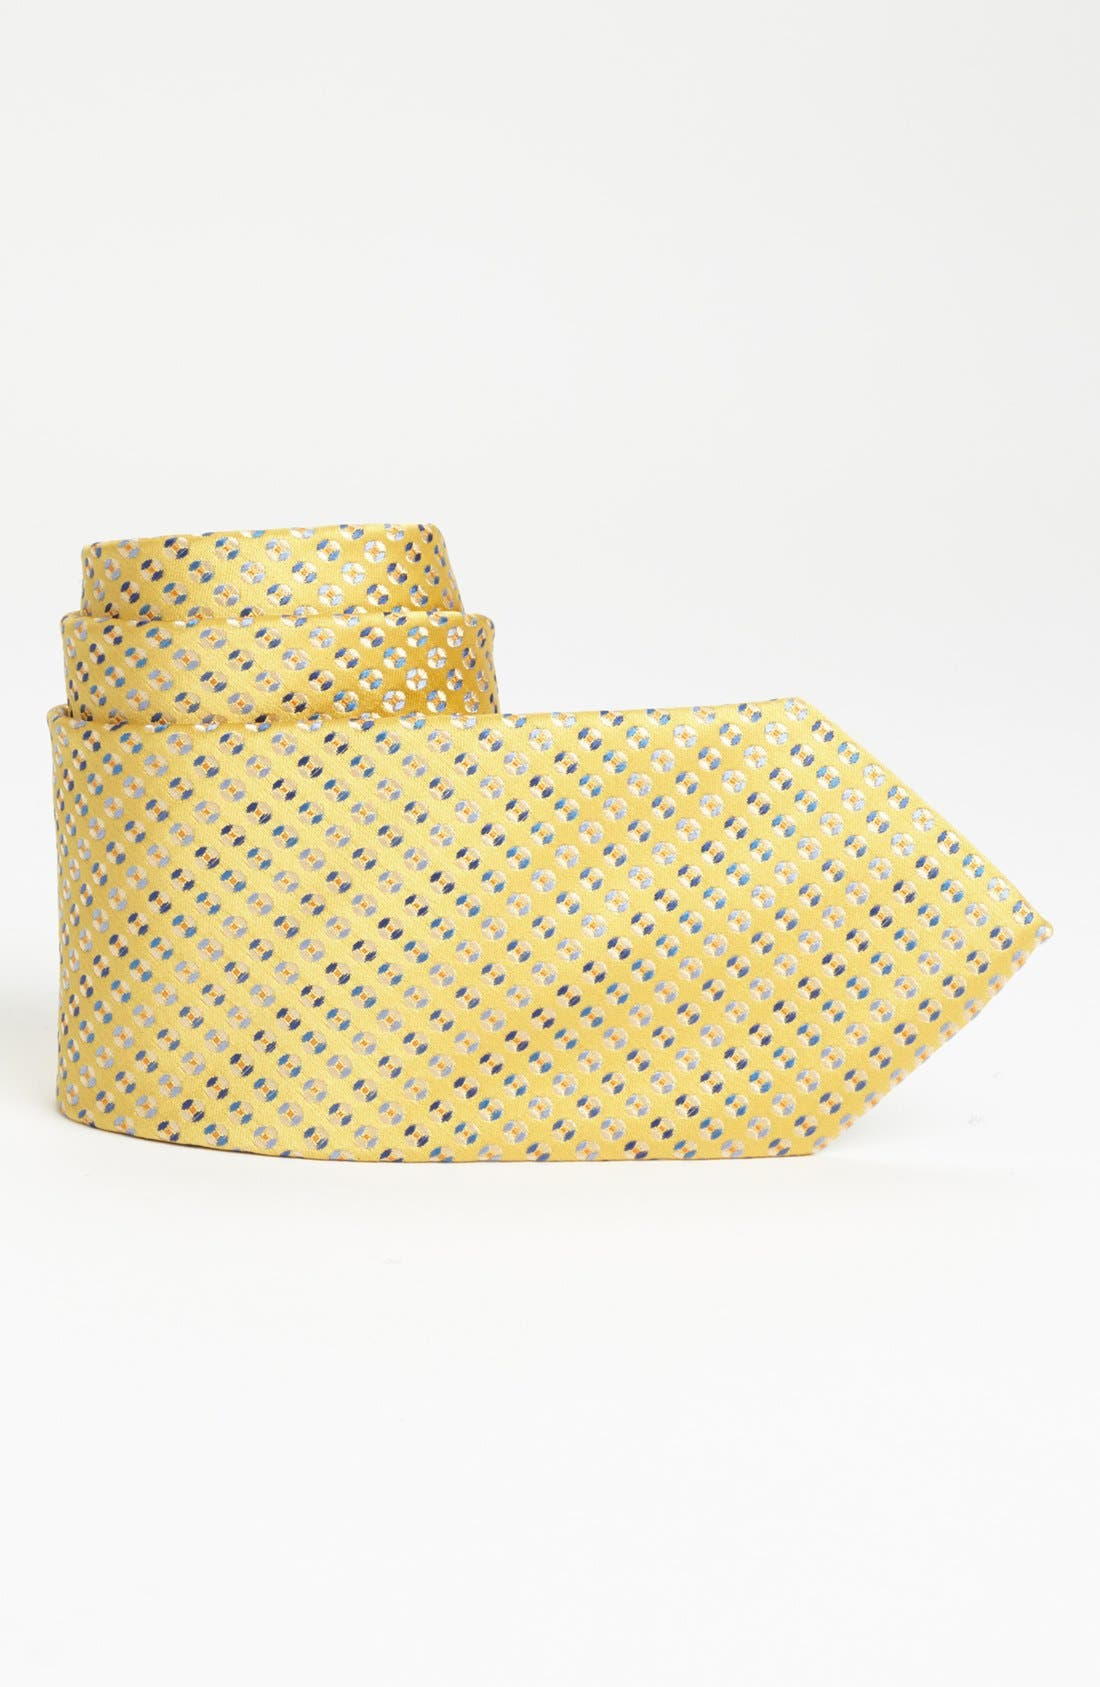 Alternate Image 1 Selected - Joseph Abboud Woven Silk Tie (Boys)